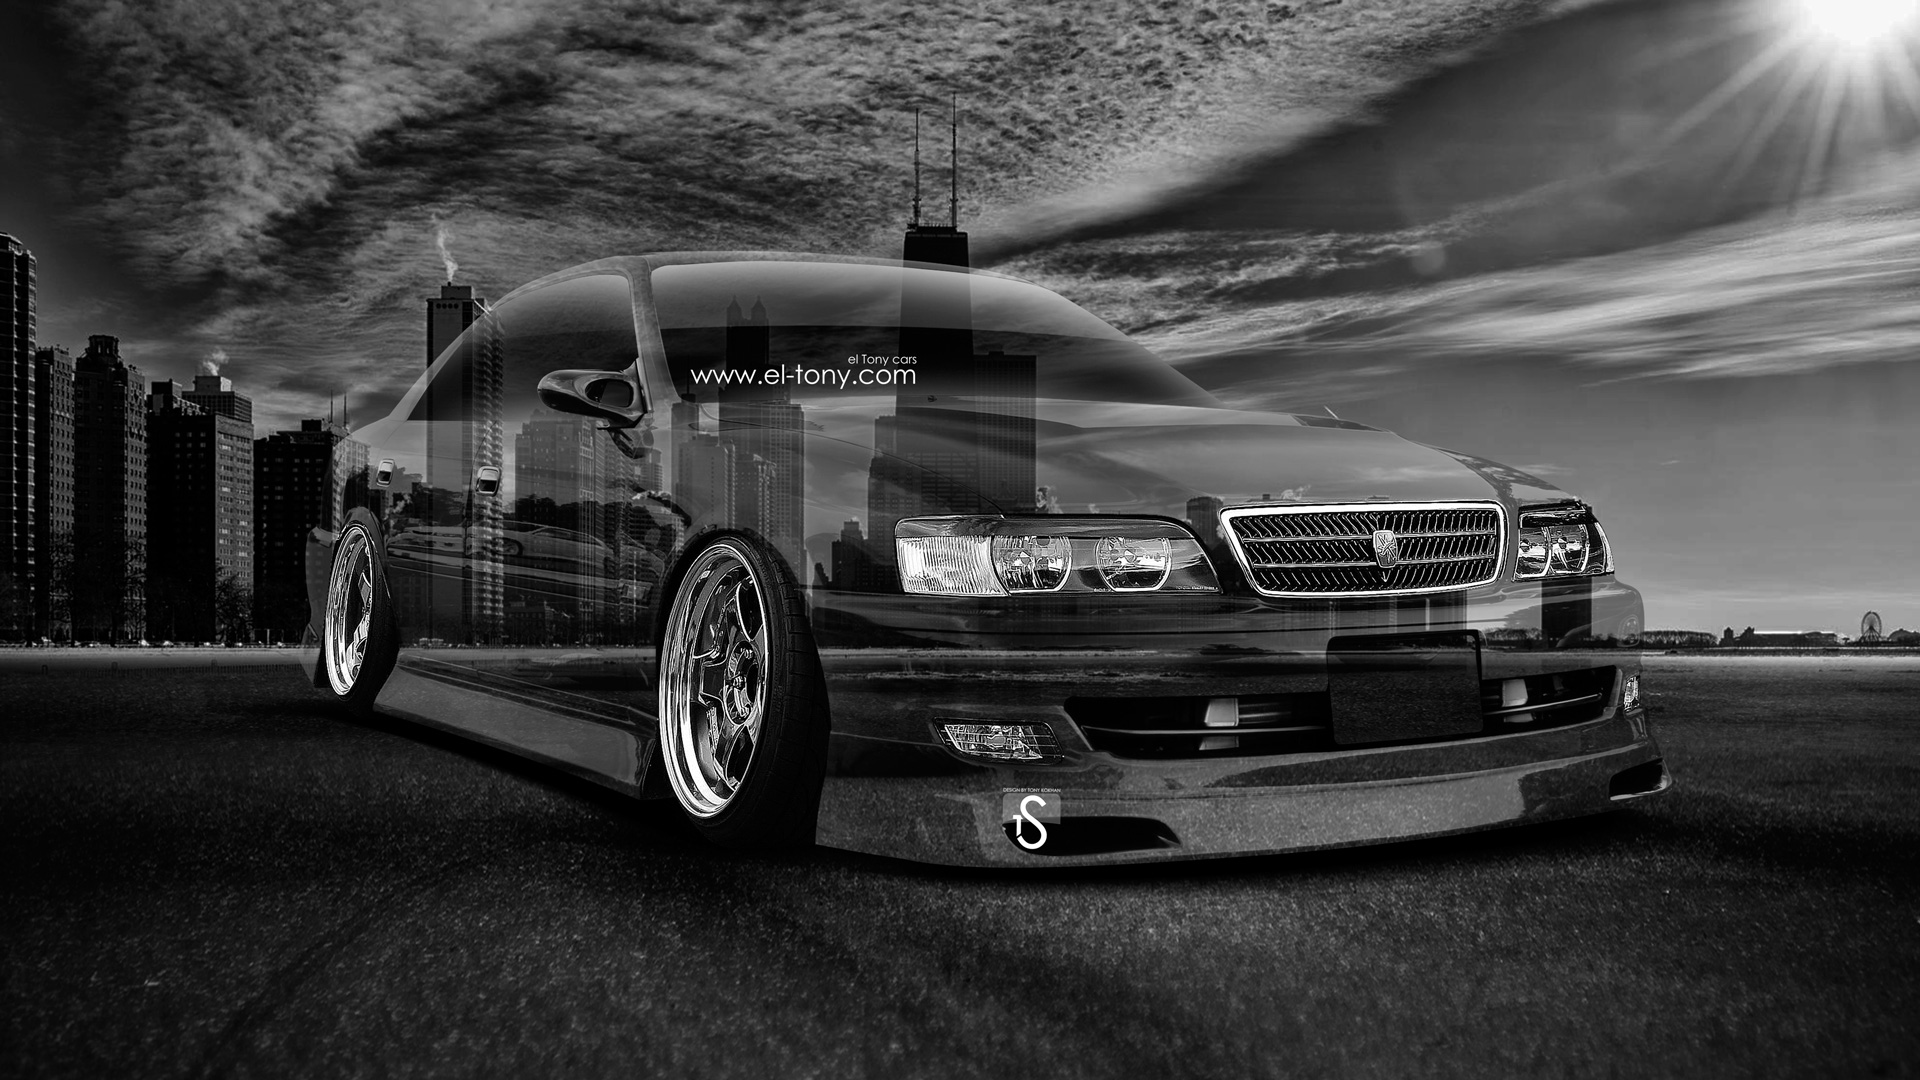 Toyota Chaser JZX100 JDM Crystal City Day Car